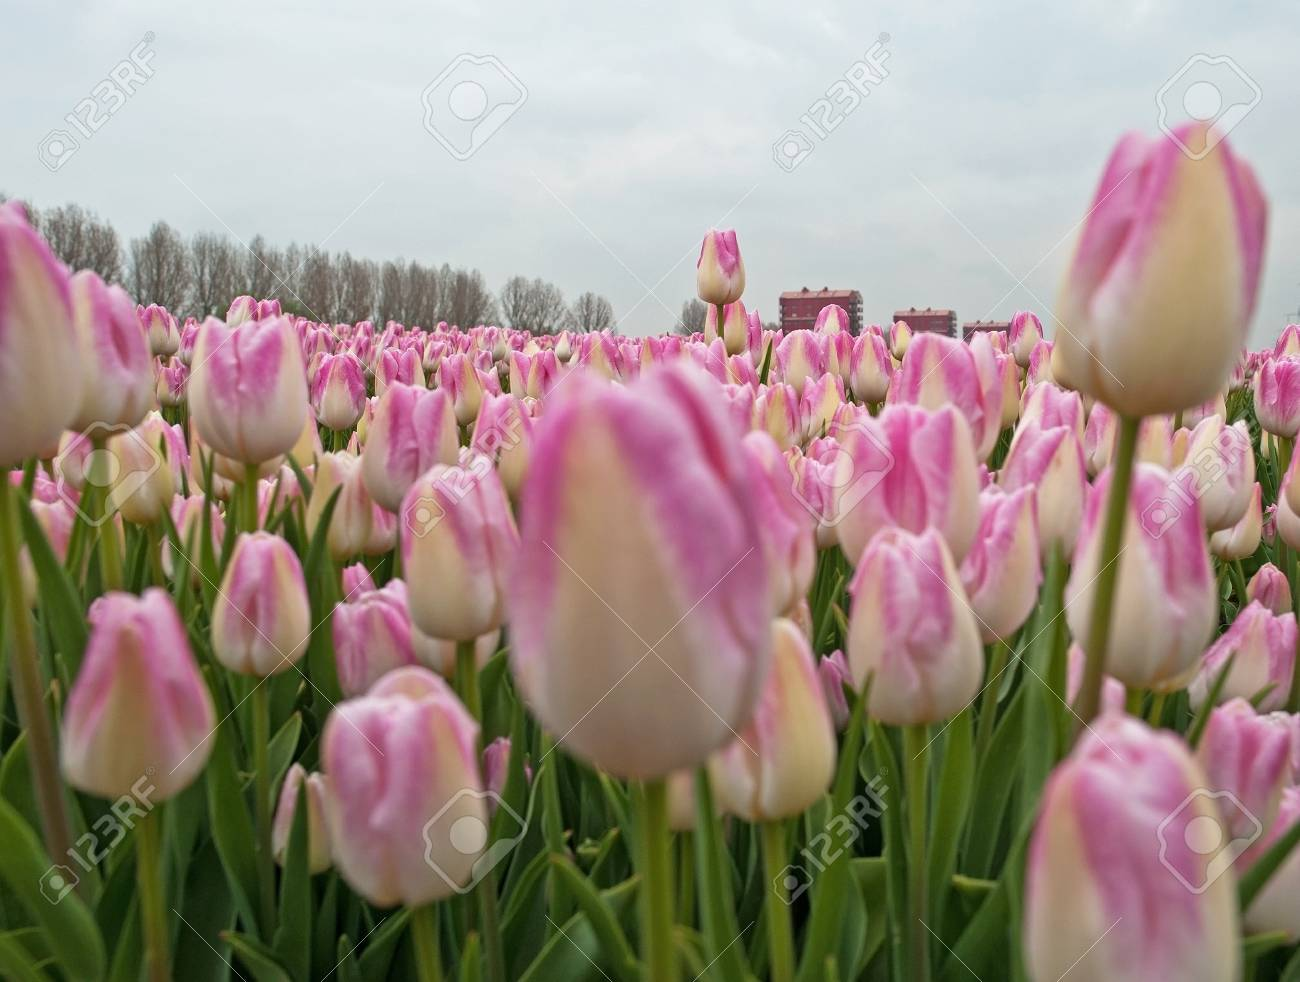 Cultivation Of Flower Bulbs In Spring Stock Photo Picture And